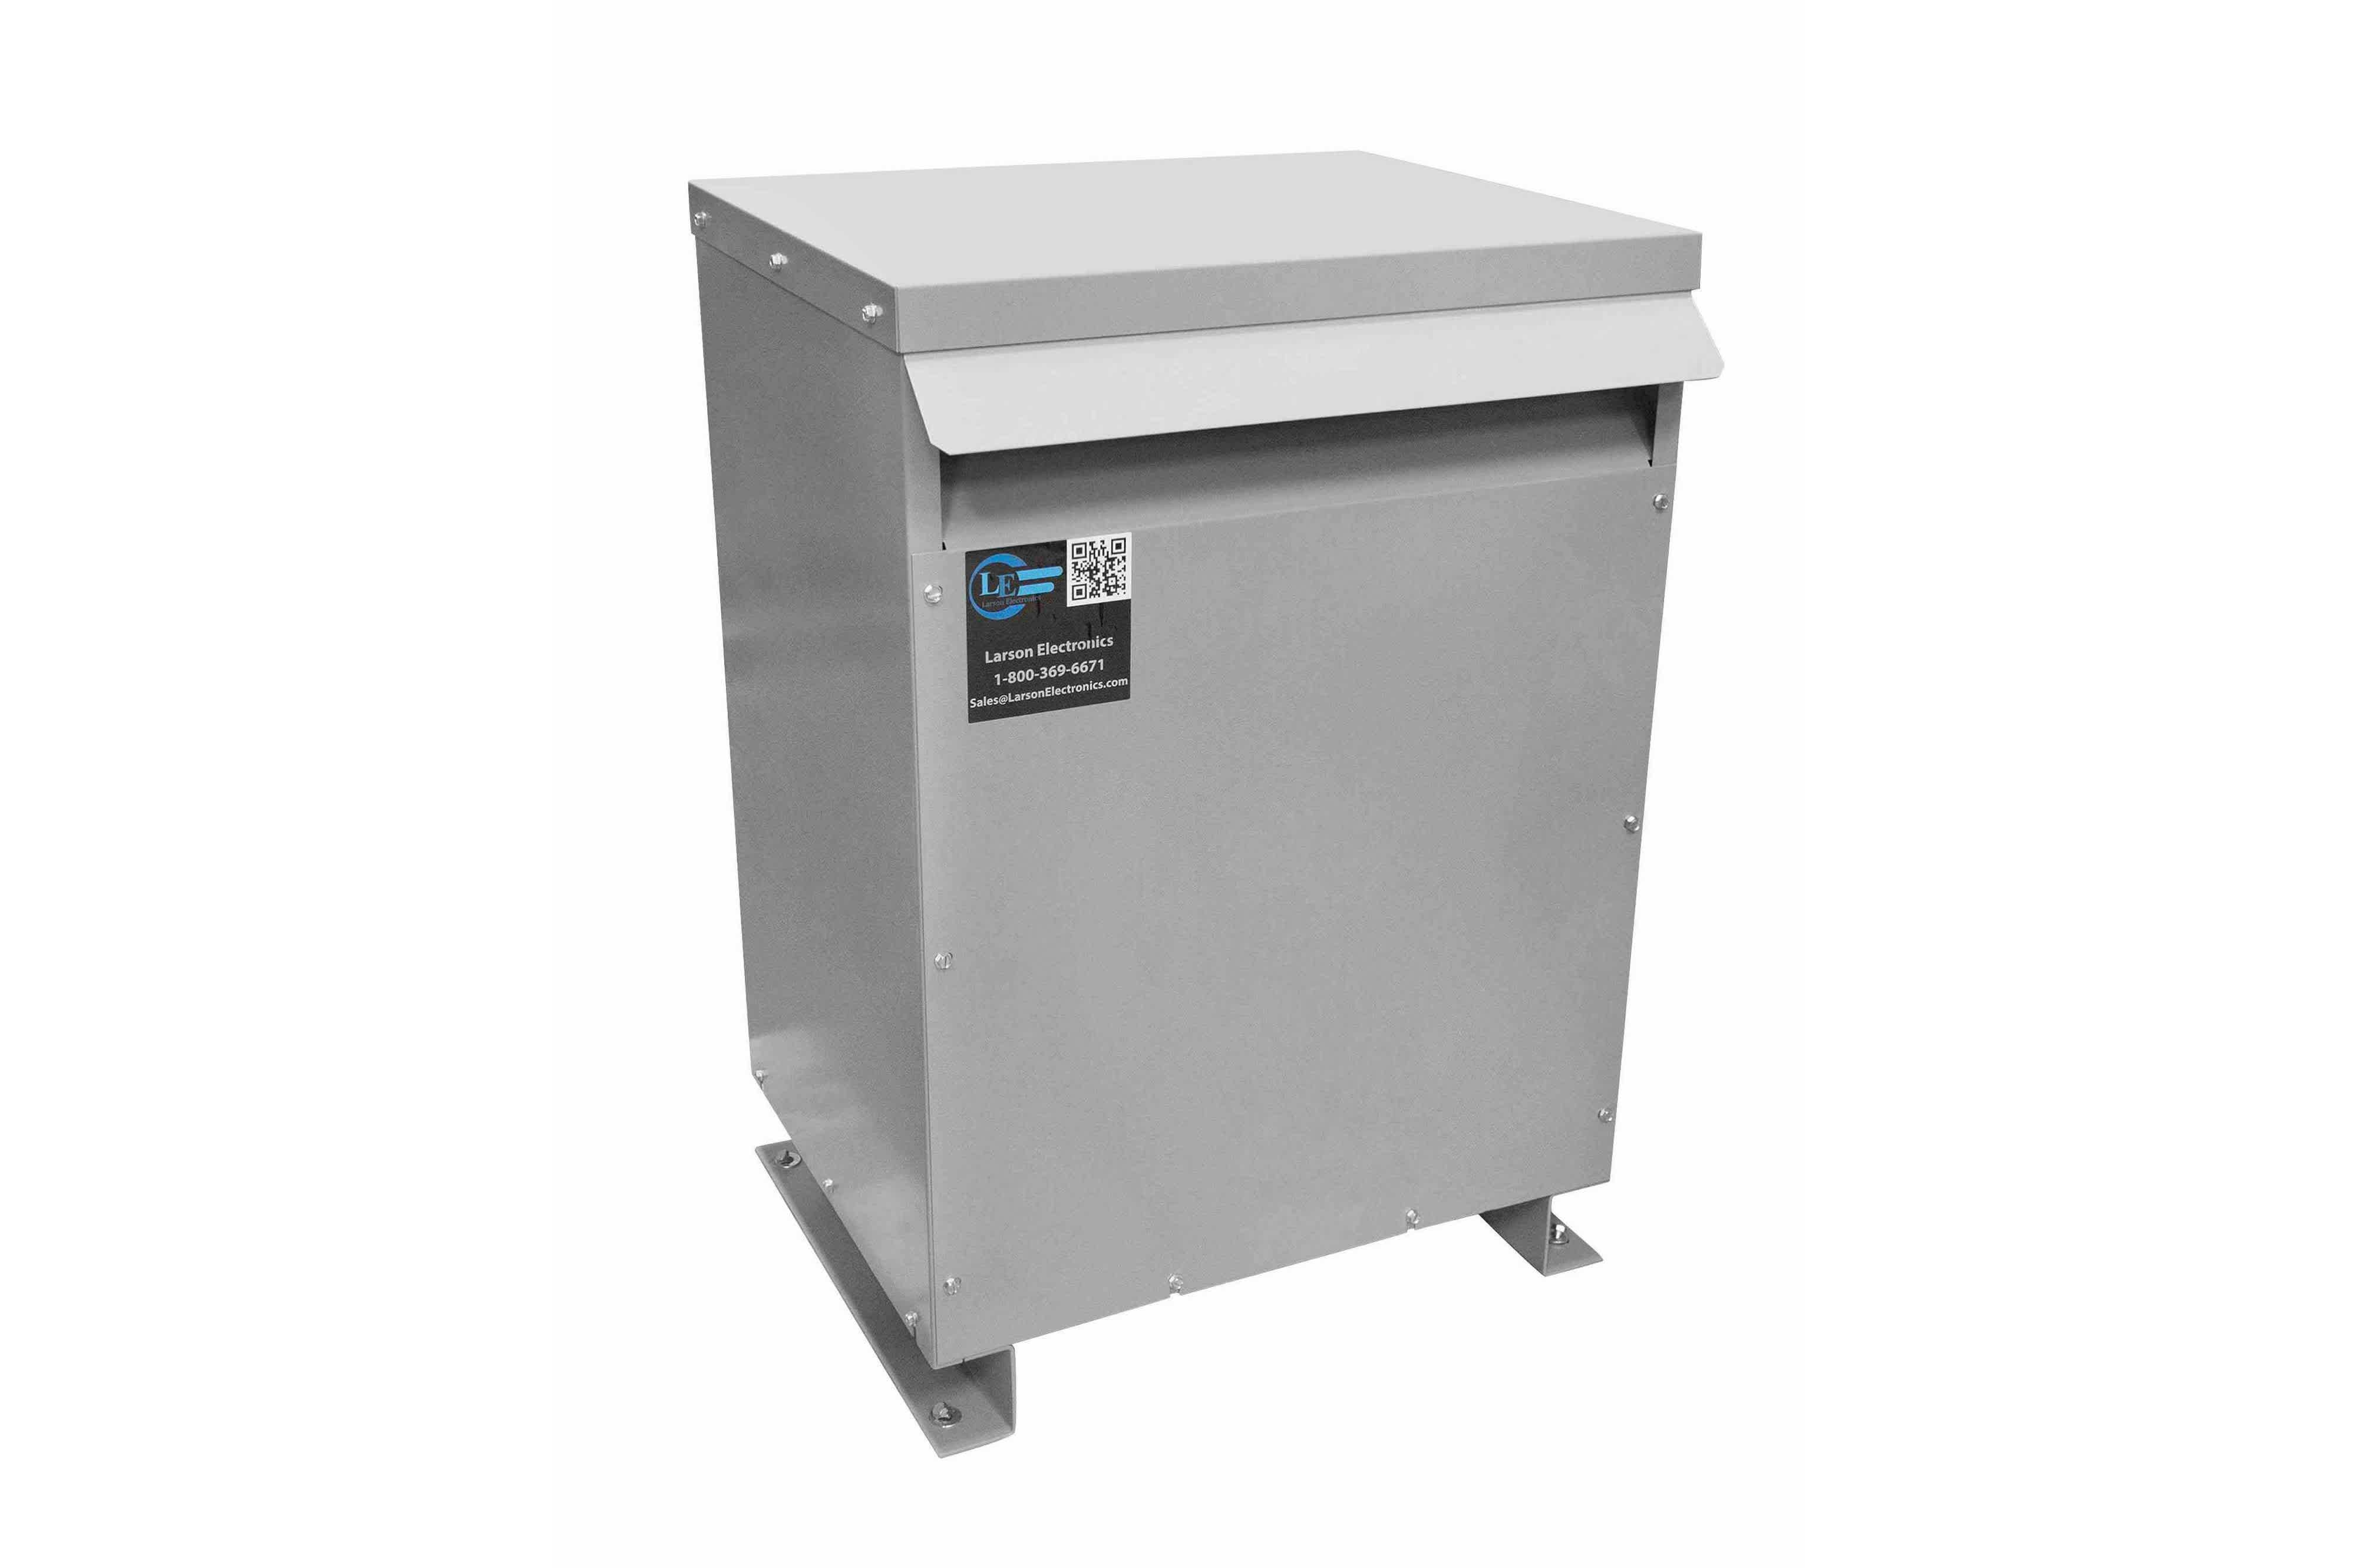 100 kVA 3PH DOE Transformer, 415V Delta Primary, 600Y/347 Wye-N Secondary, N3R, Ventilated, 60 Hz